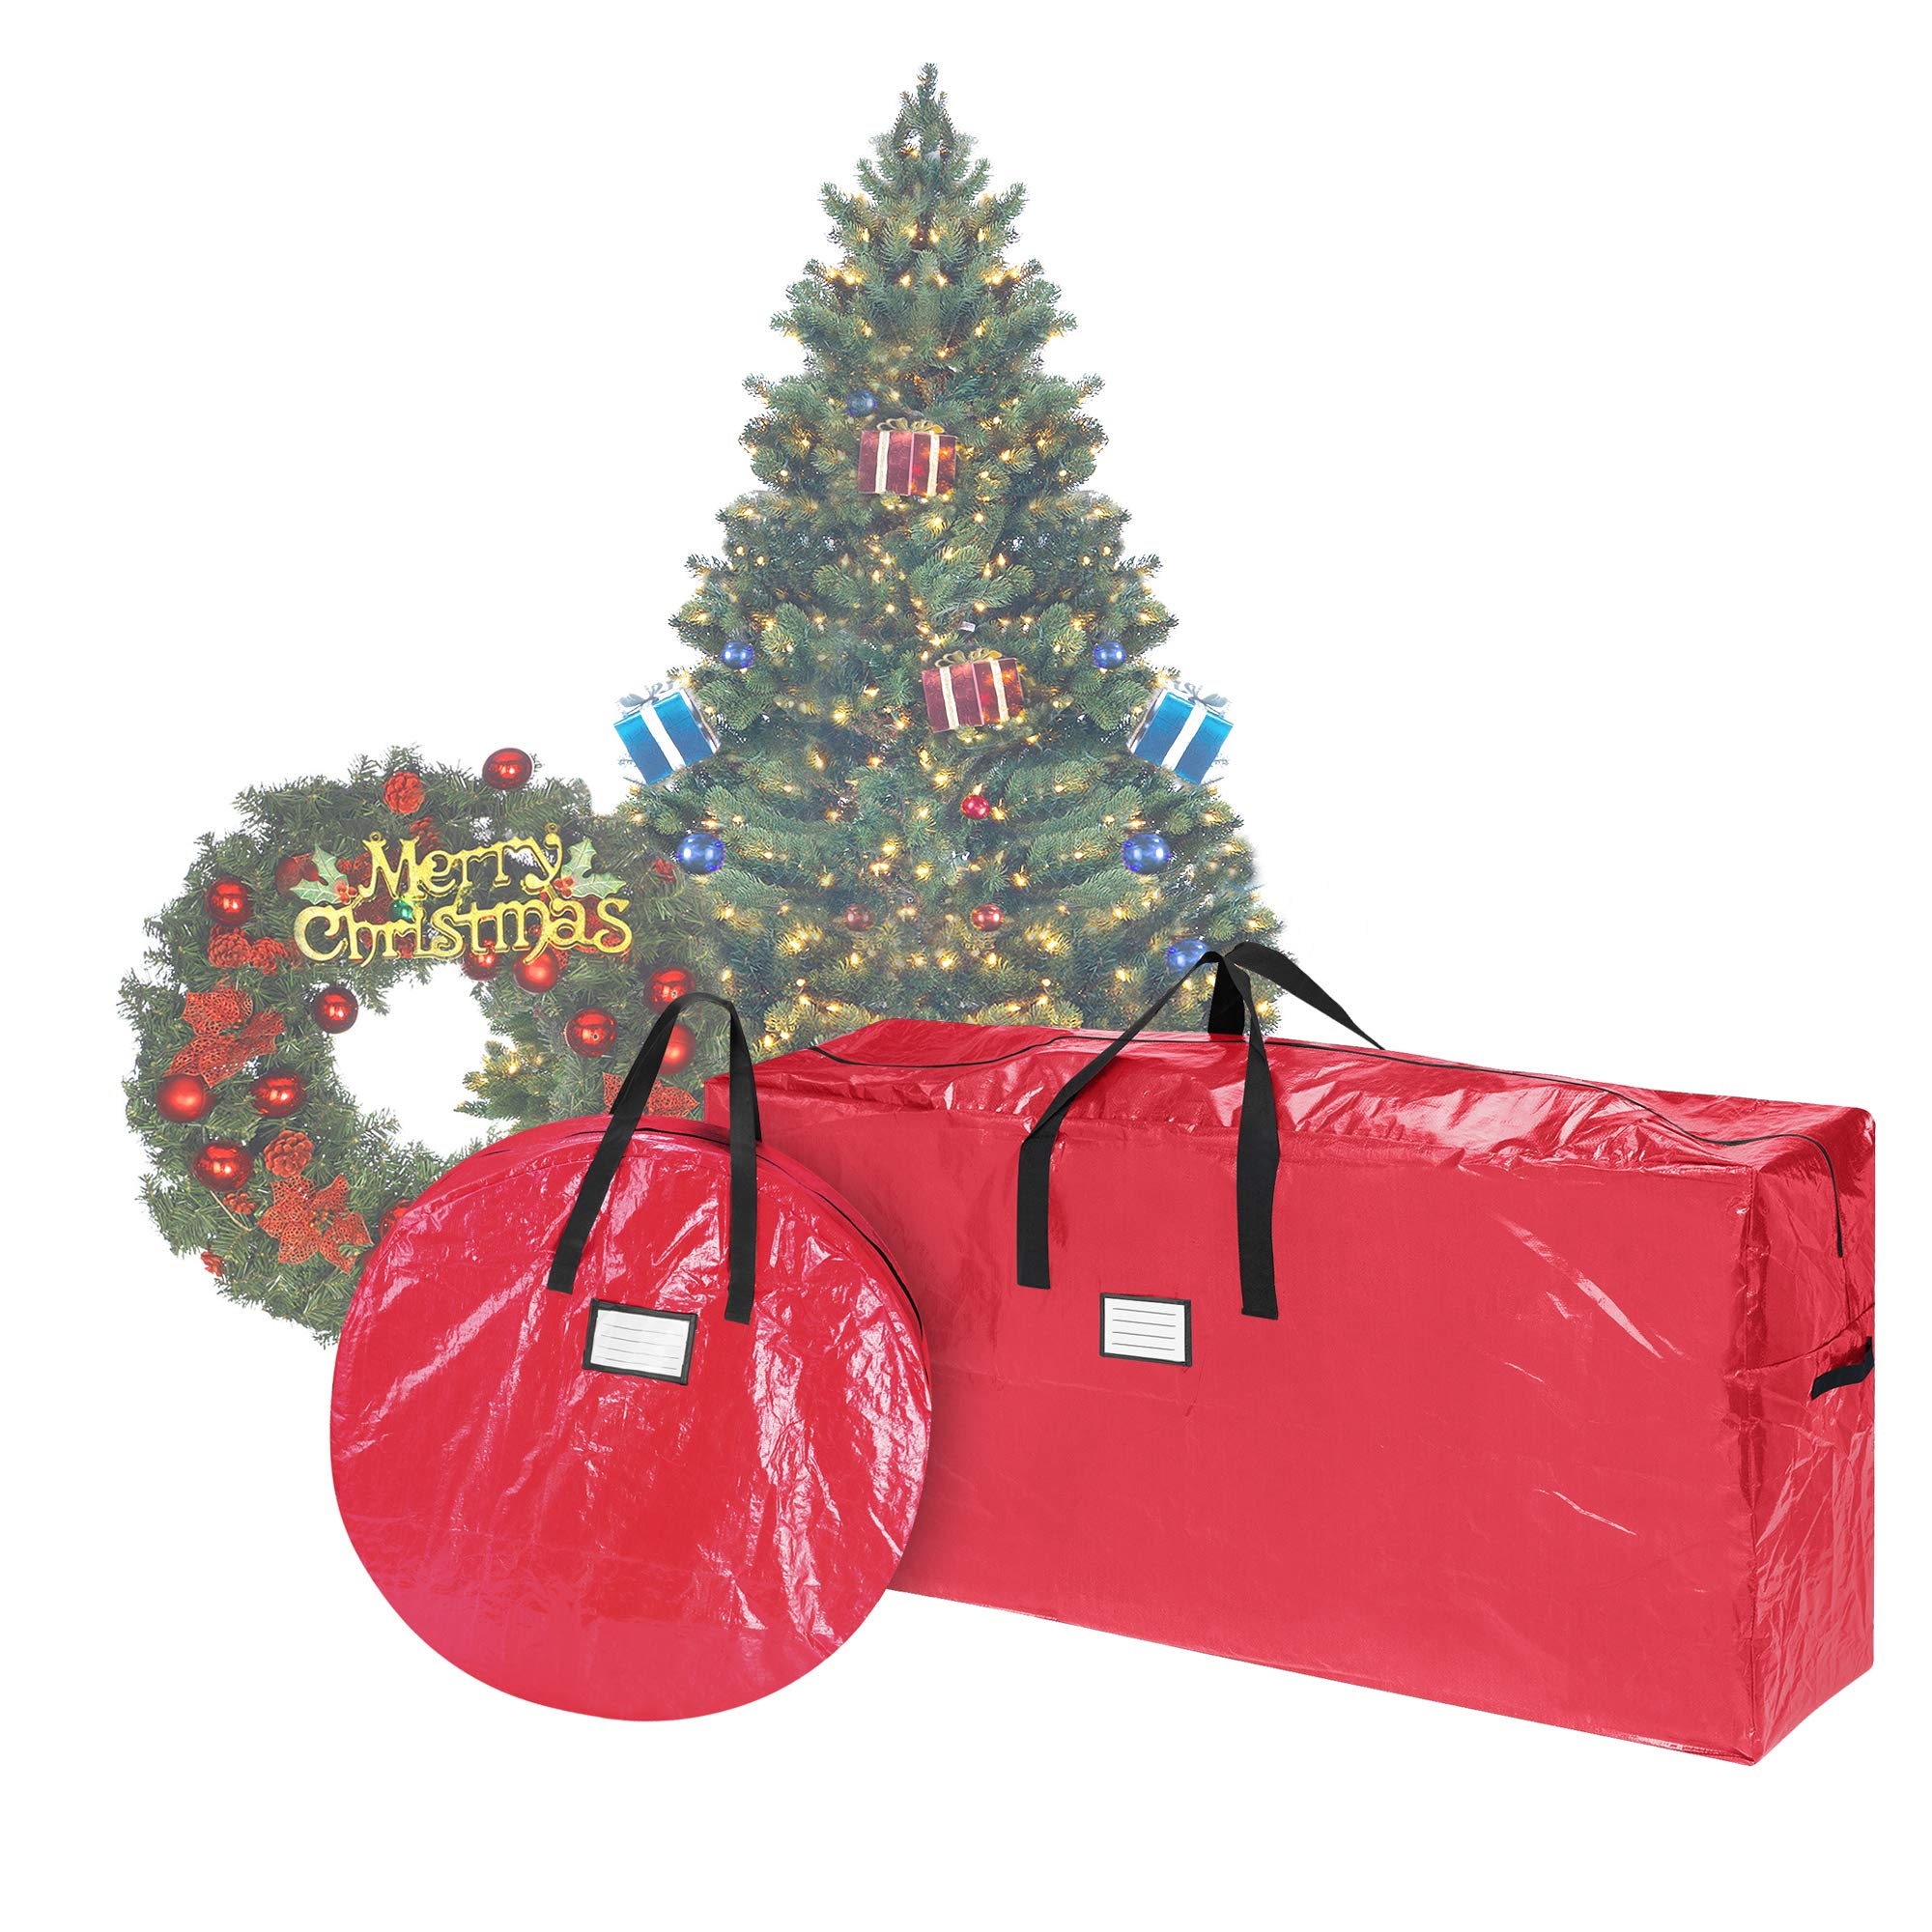 Elf Stor 83-DT5523 Combo | Christmas Storage 9 Foot Artificial Tree and 30 inch Wreath Bag | Red